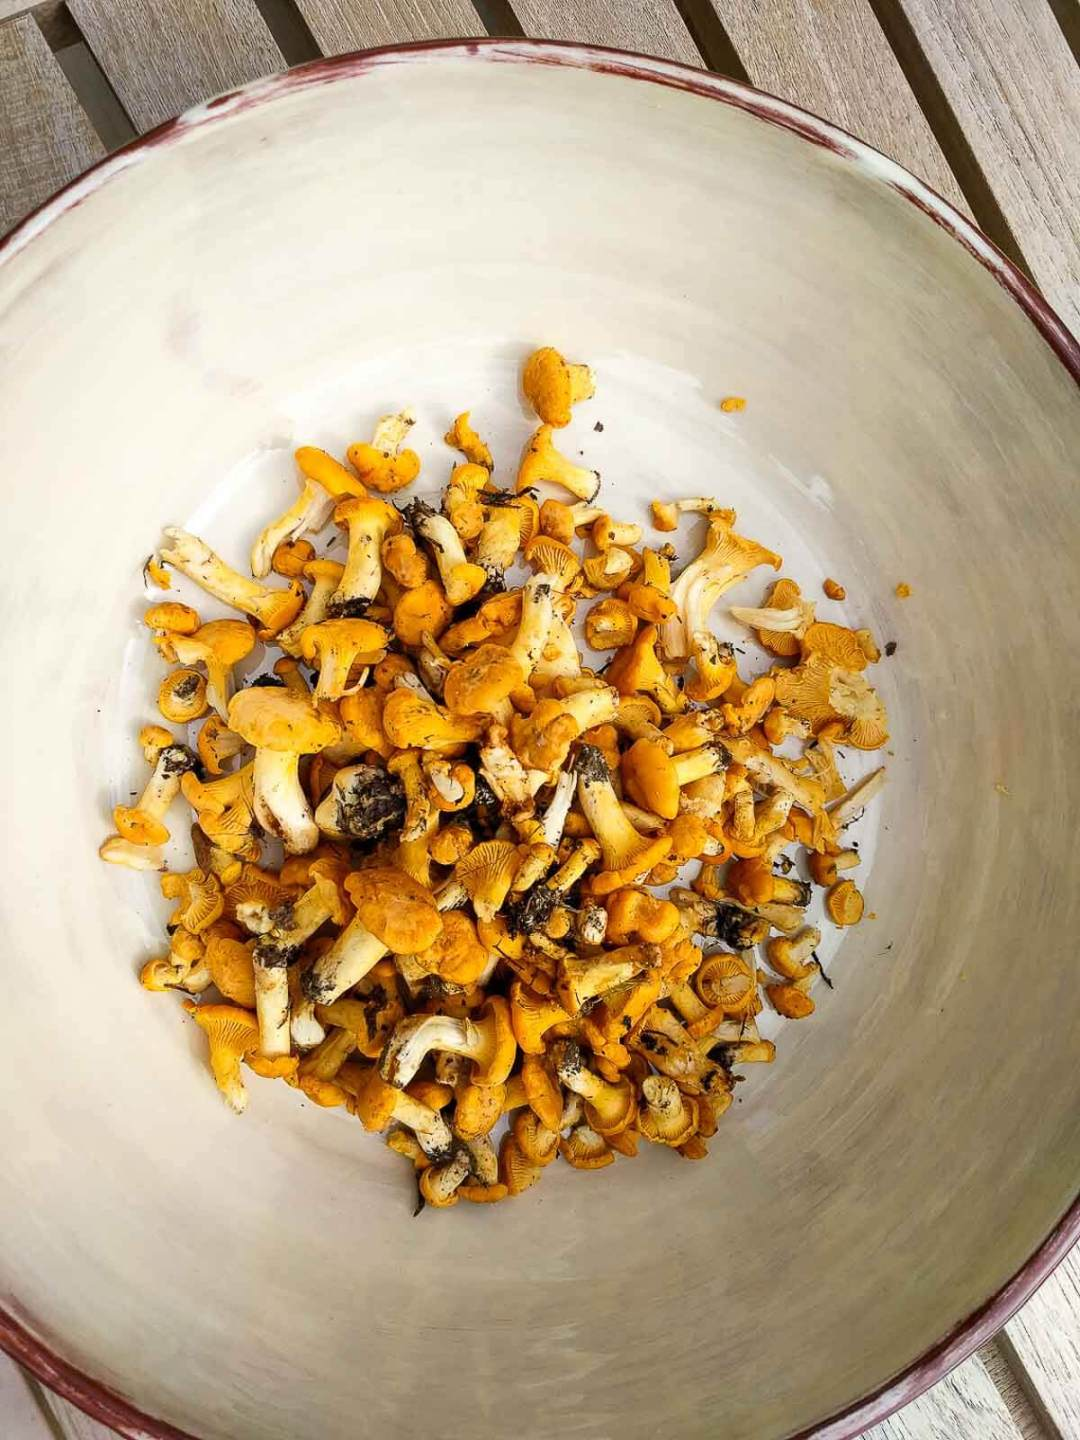 chanterelle mushrooms foraged in the forest in Finland